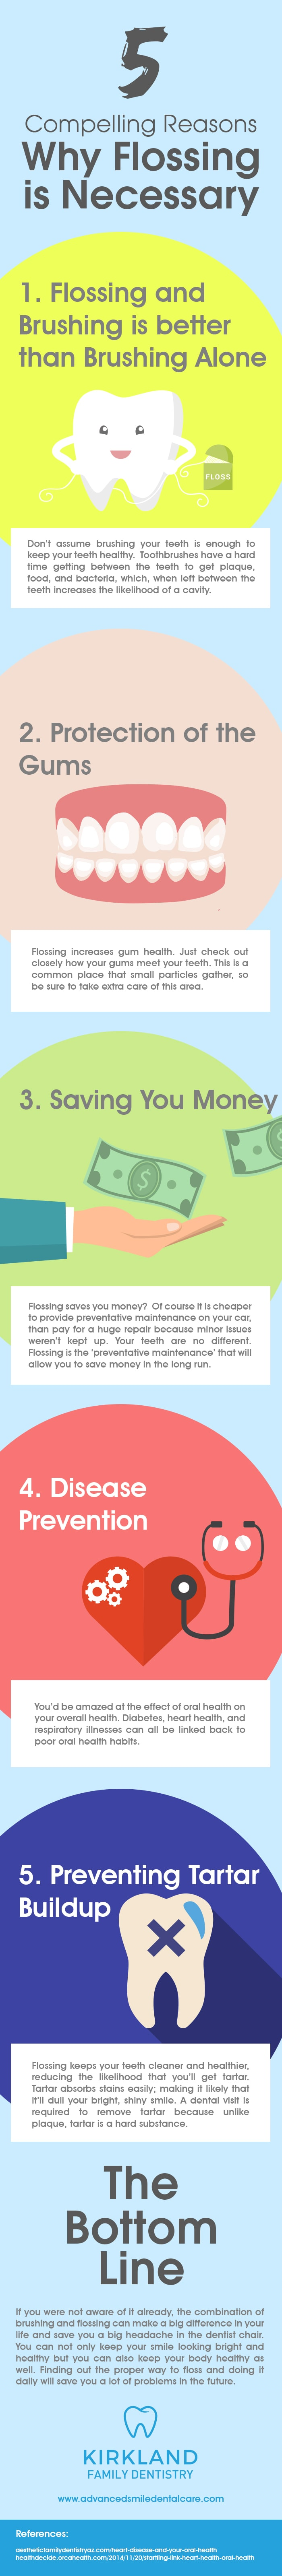 Infographics - Compellings Reasons Why Flossing in Necessary